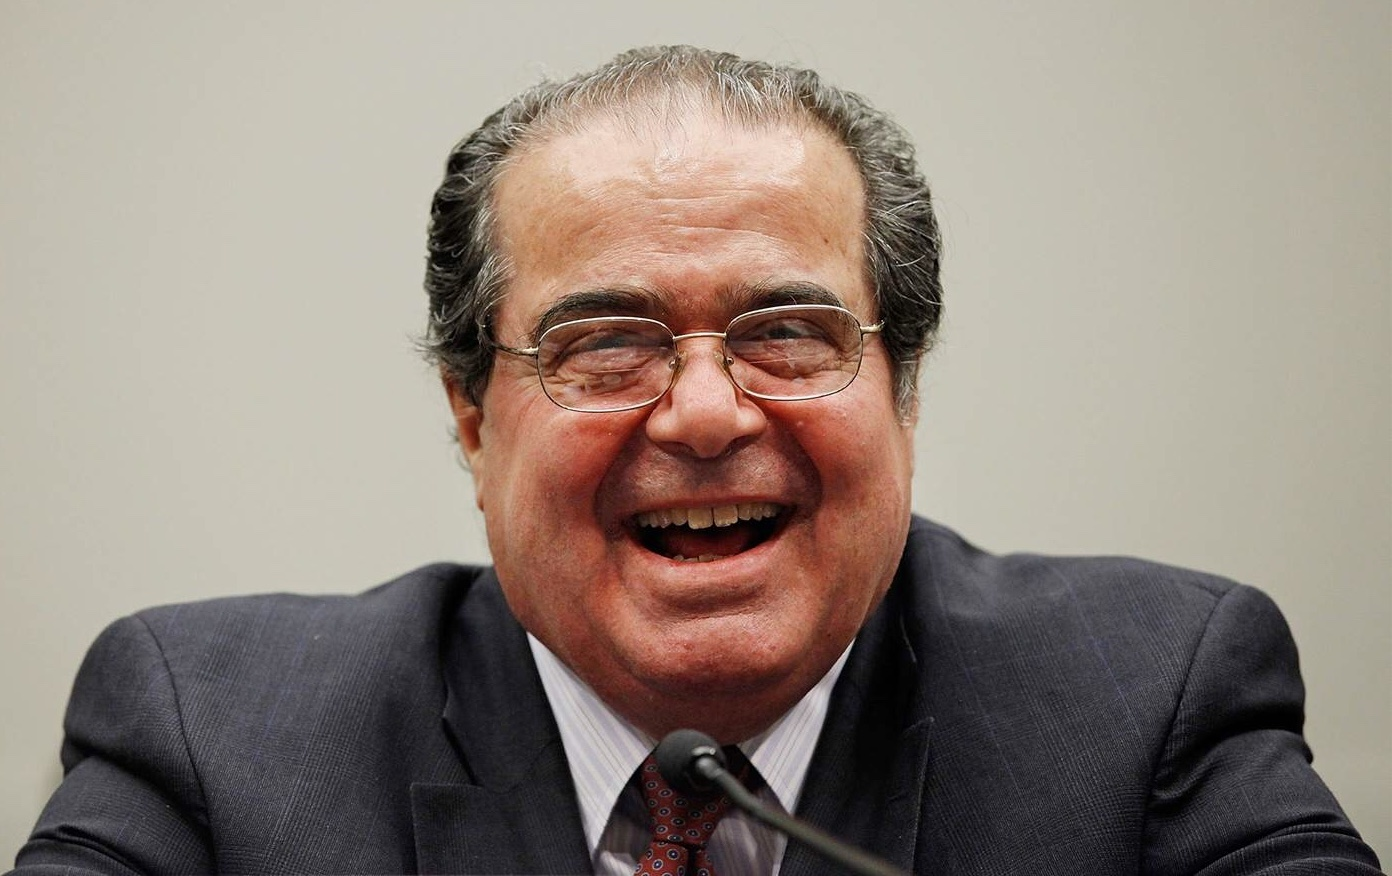 Professor says Scalia was wrong about bearing arms